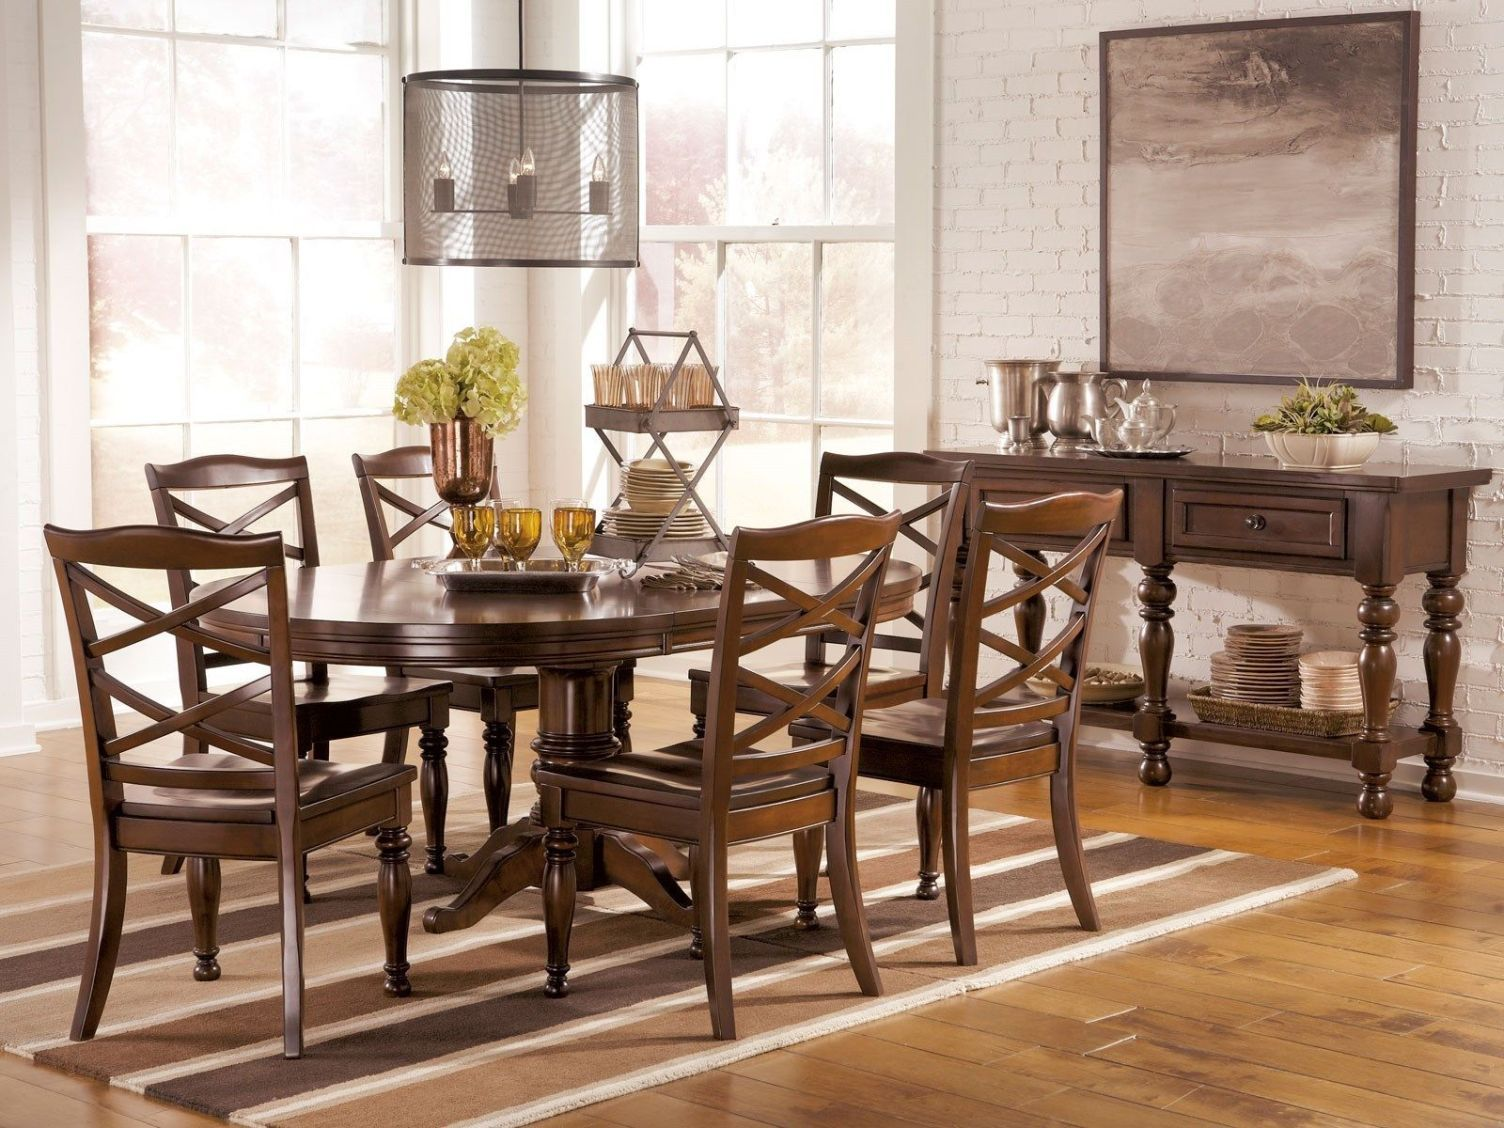 Smart Tips For Decorating A Dining Room Dining Room Design